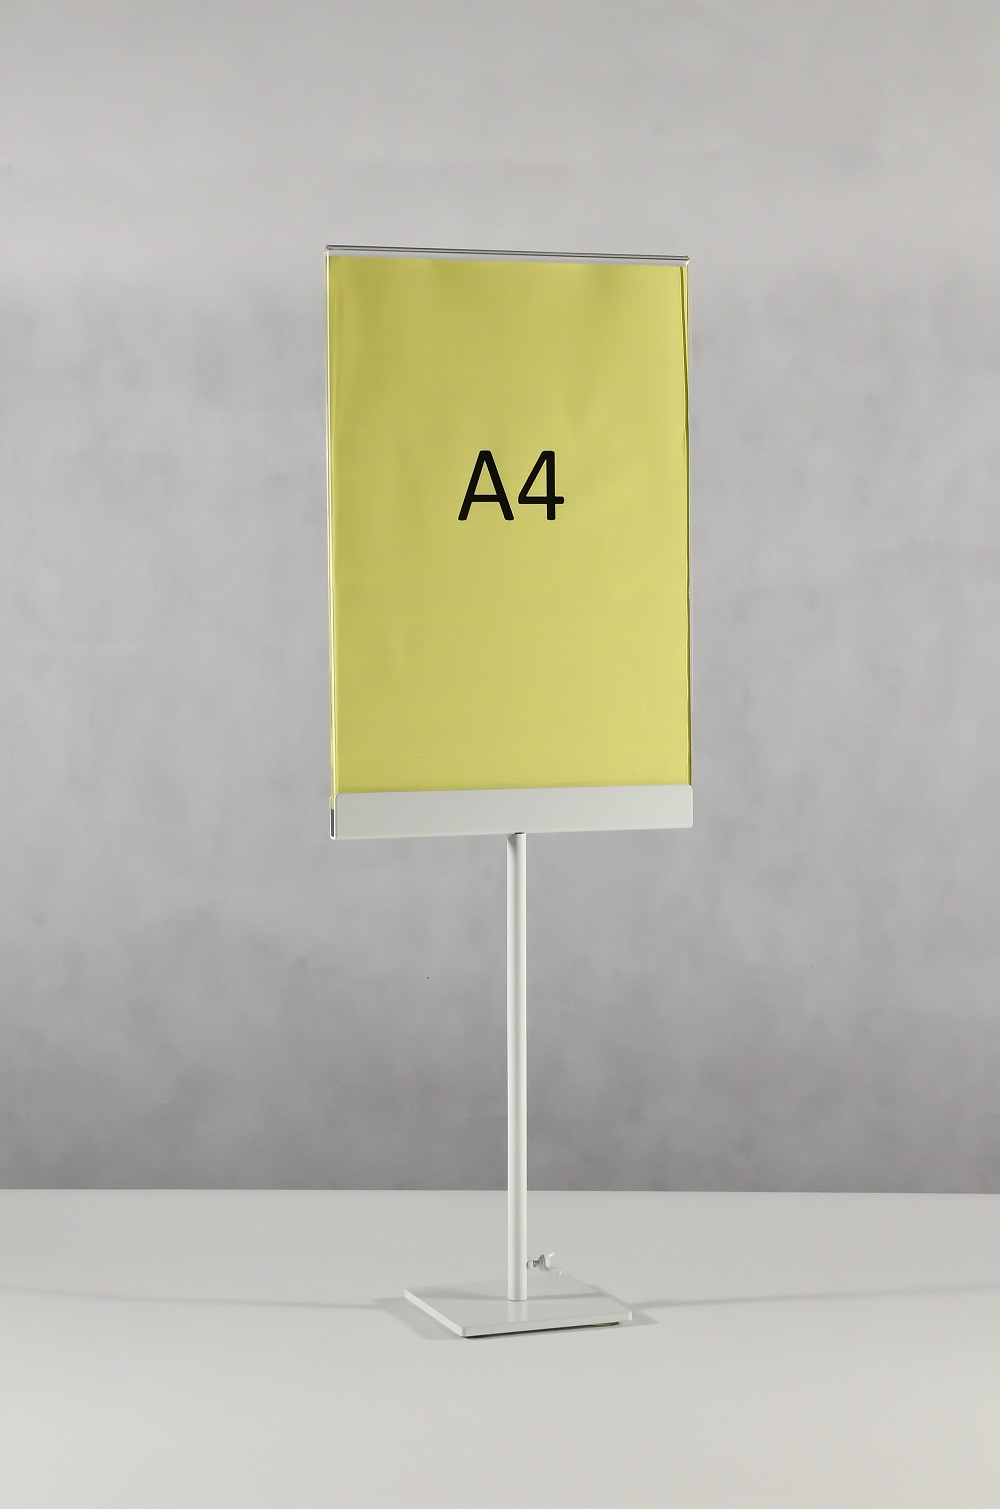 porte-document porte-affiche A4